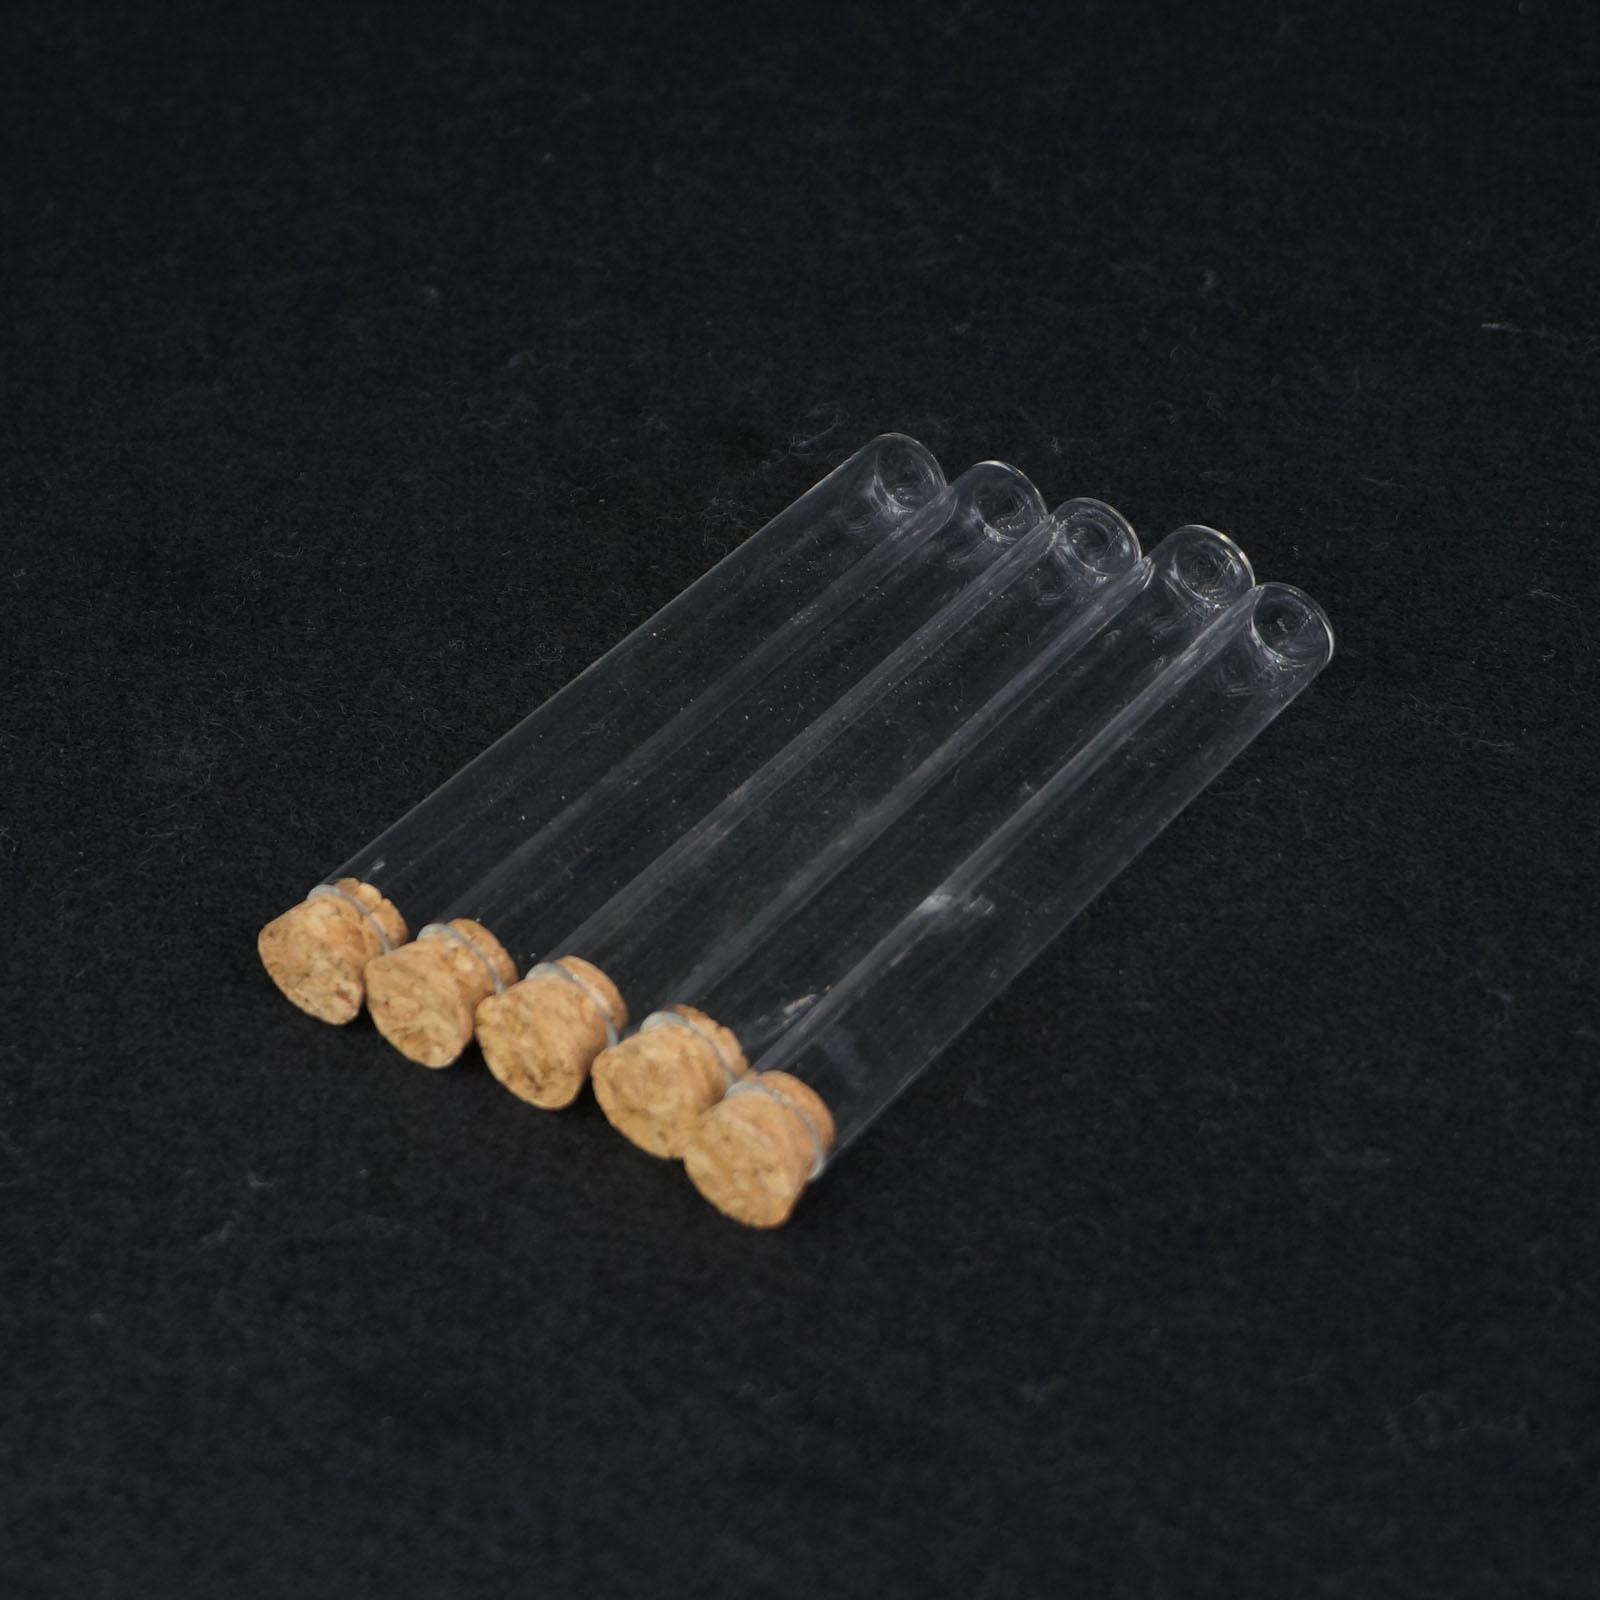 5Pcs 12x100mm Lab Glass Test Tube Flat Bottom With Wood Stopper Thermostability